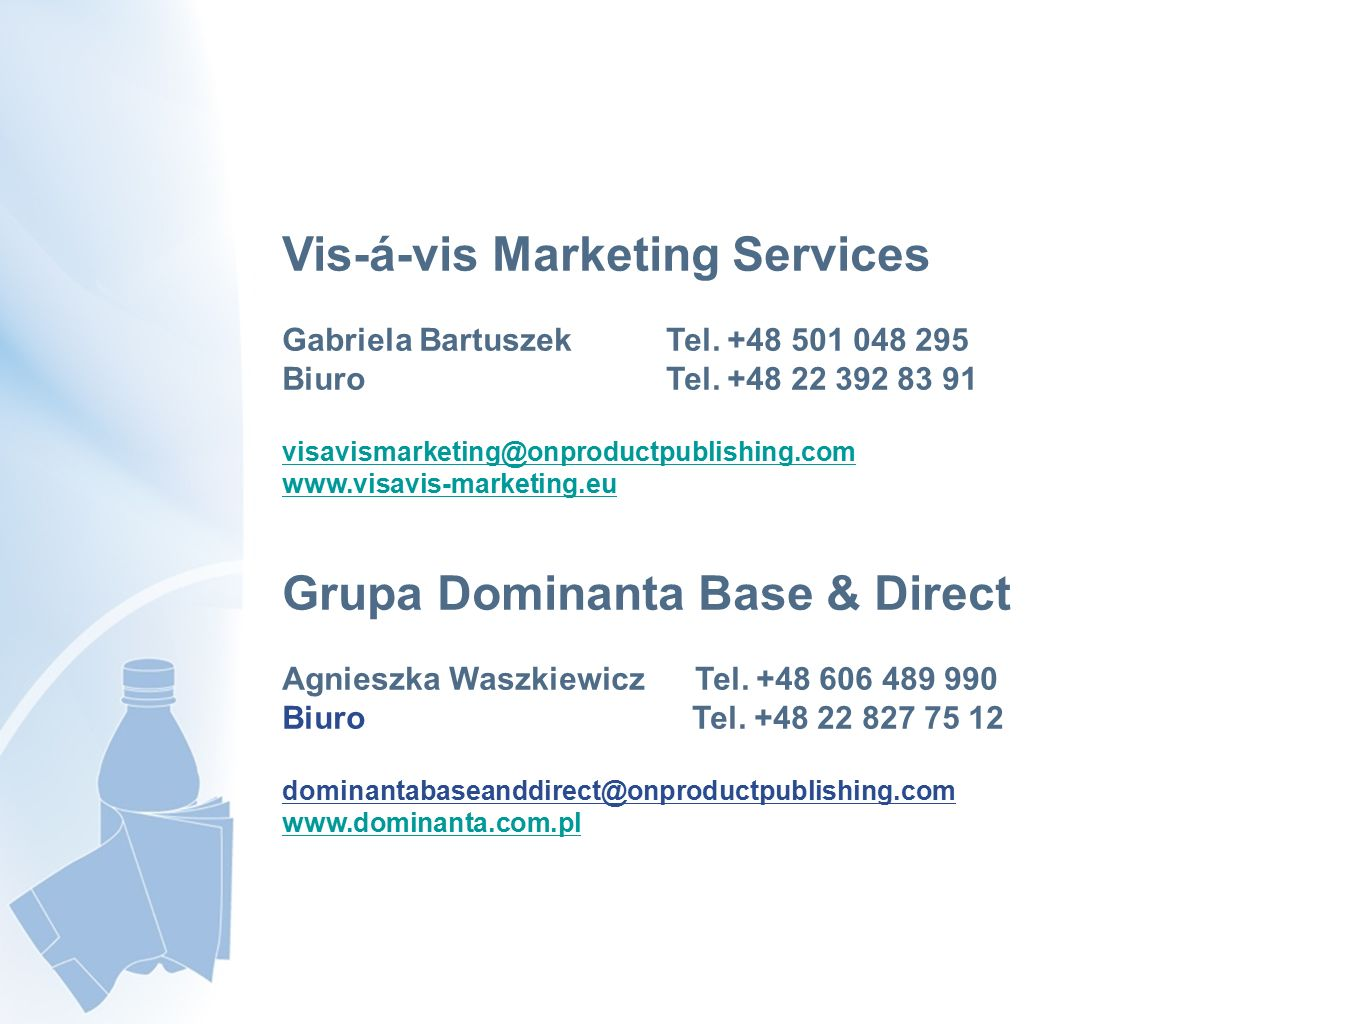 Vis-á-vis Marketing Services Gabriela Bartuszek Tel. +48 501 048 295 Biuro Tel. +48 22 392 83 91 visavismarketing@onproductpublishing.com www.visavis-